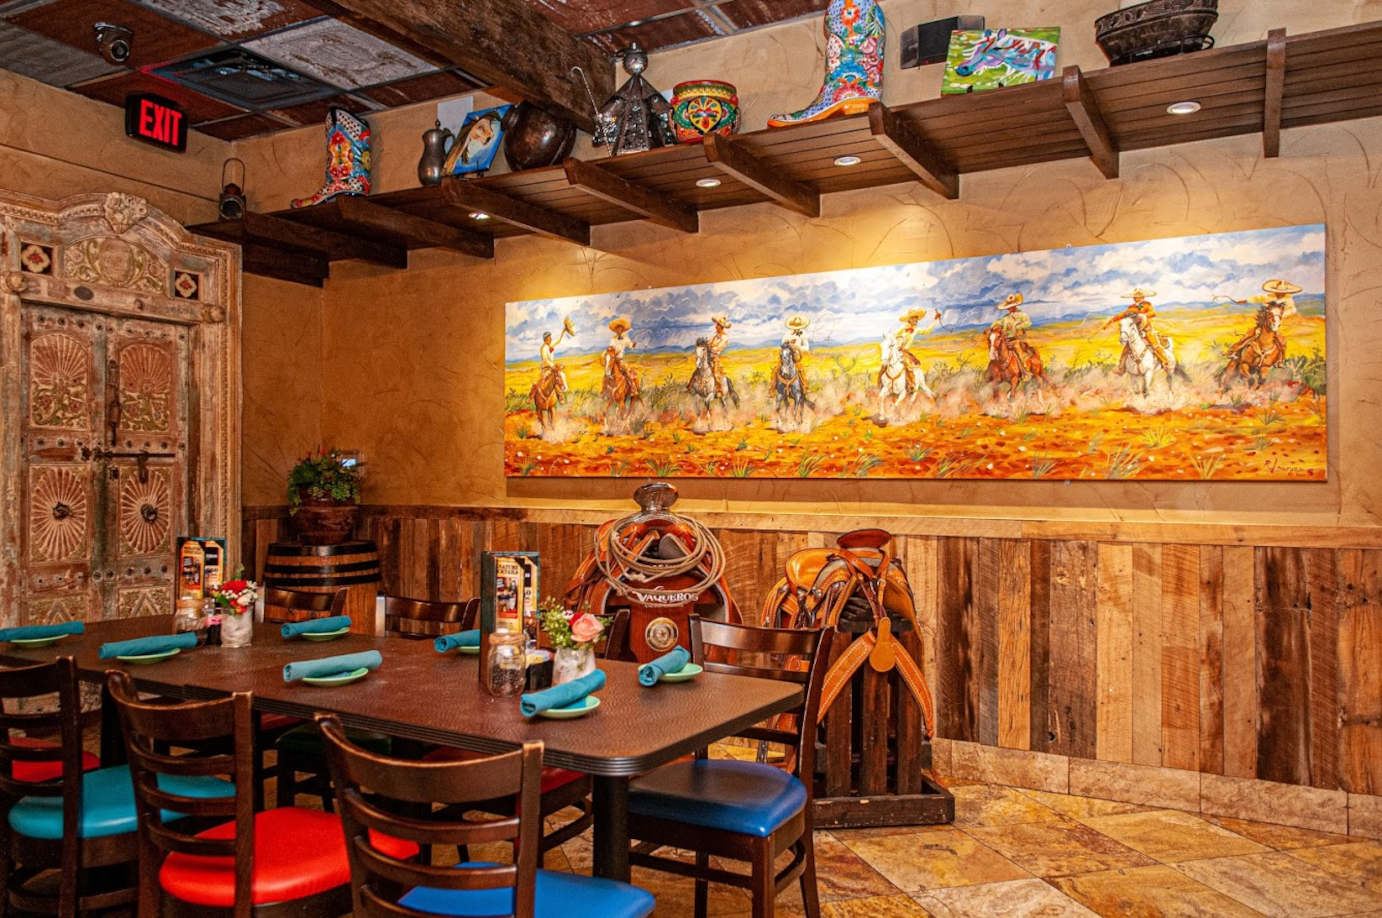 Restaurant interior, wall decorations in the back